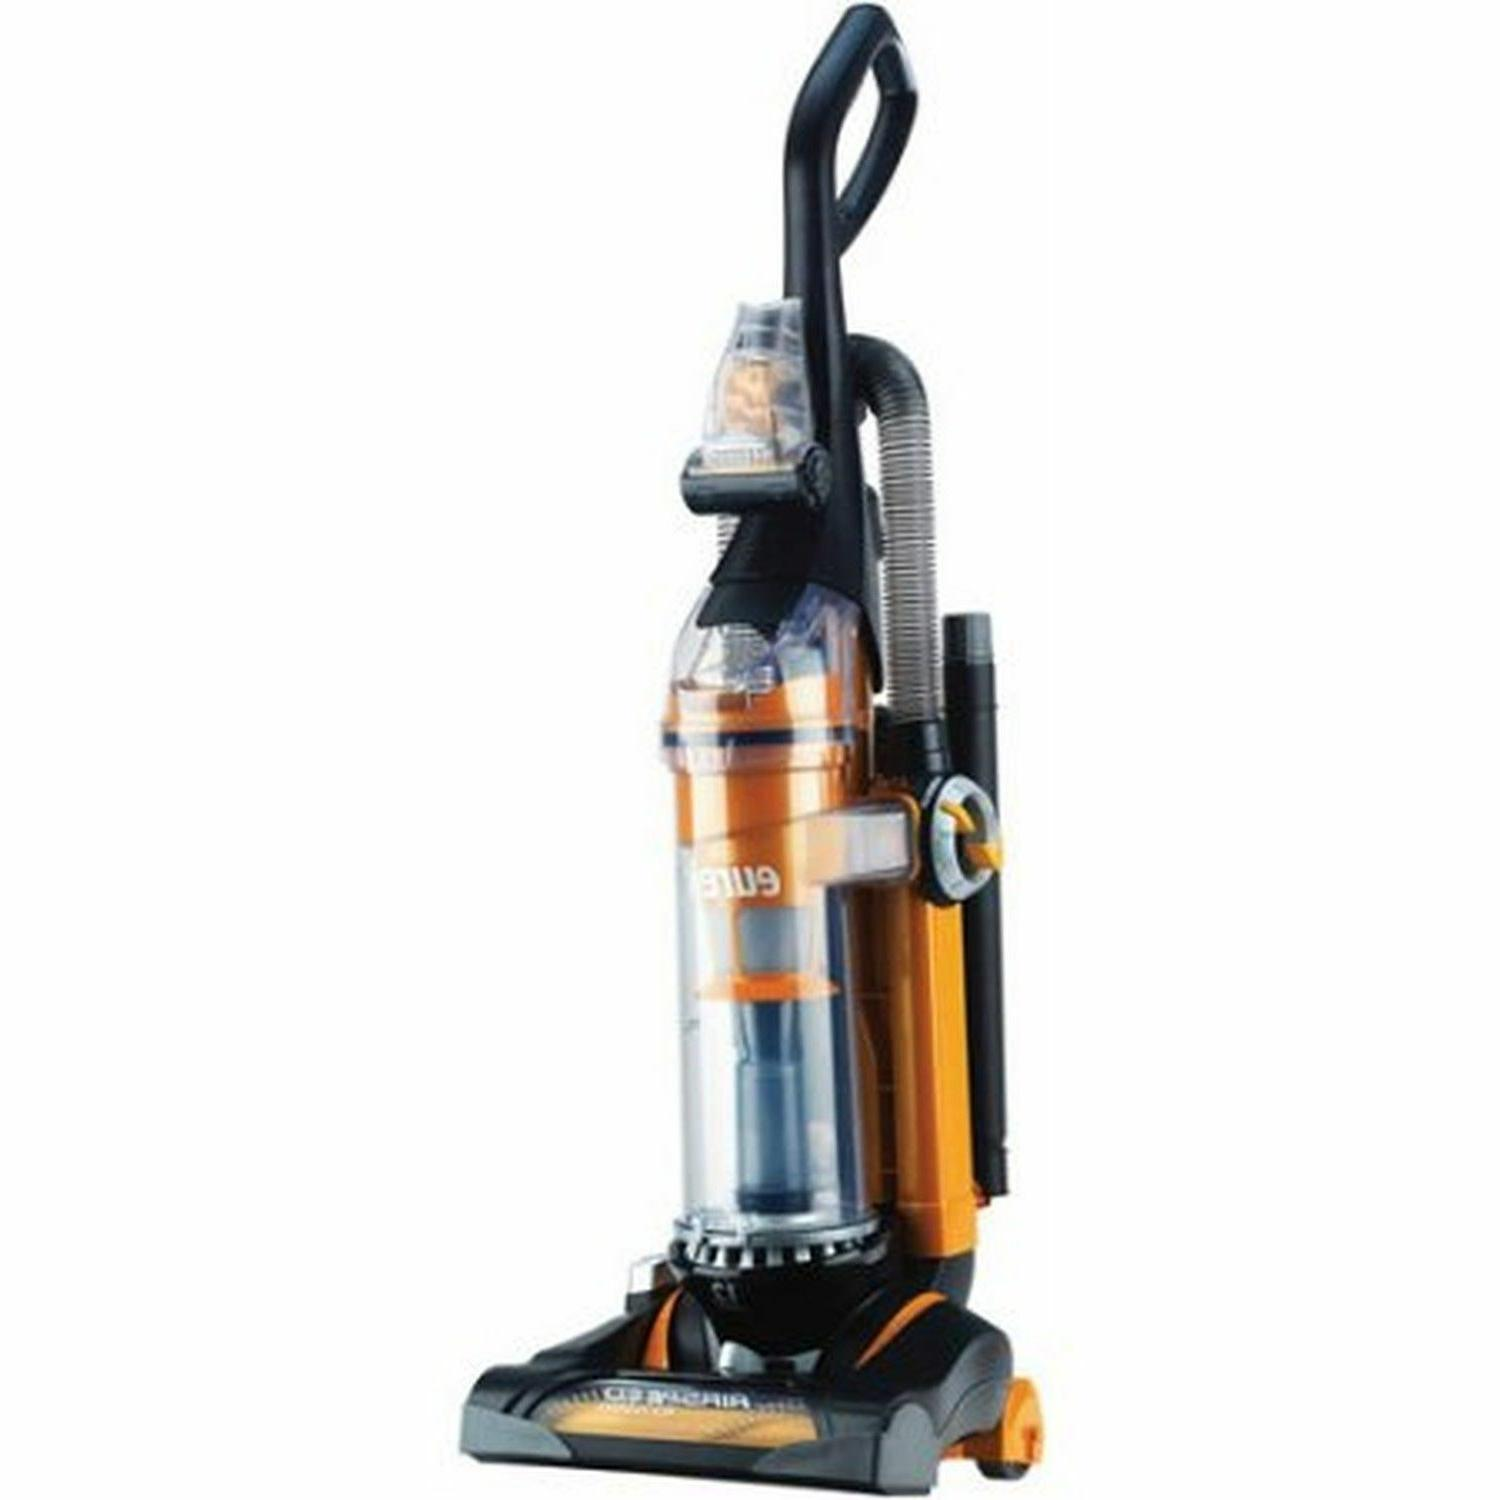 Brand New Eureka AirSpeed All Floors Bagless Upright Vacuum,